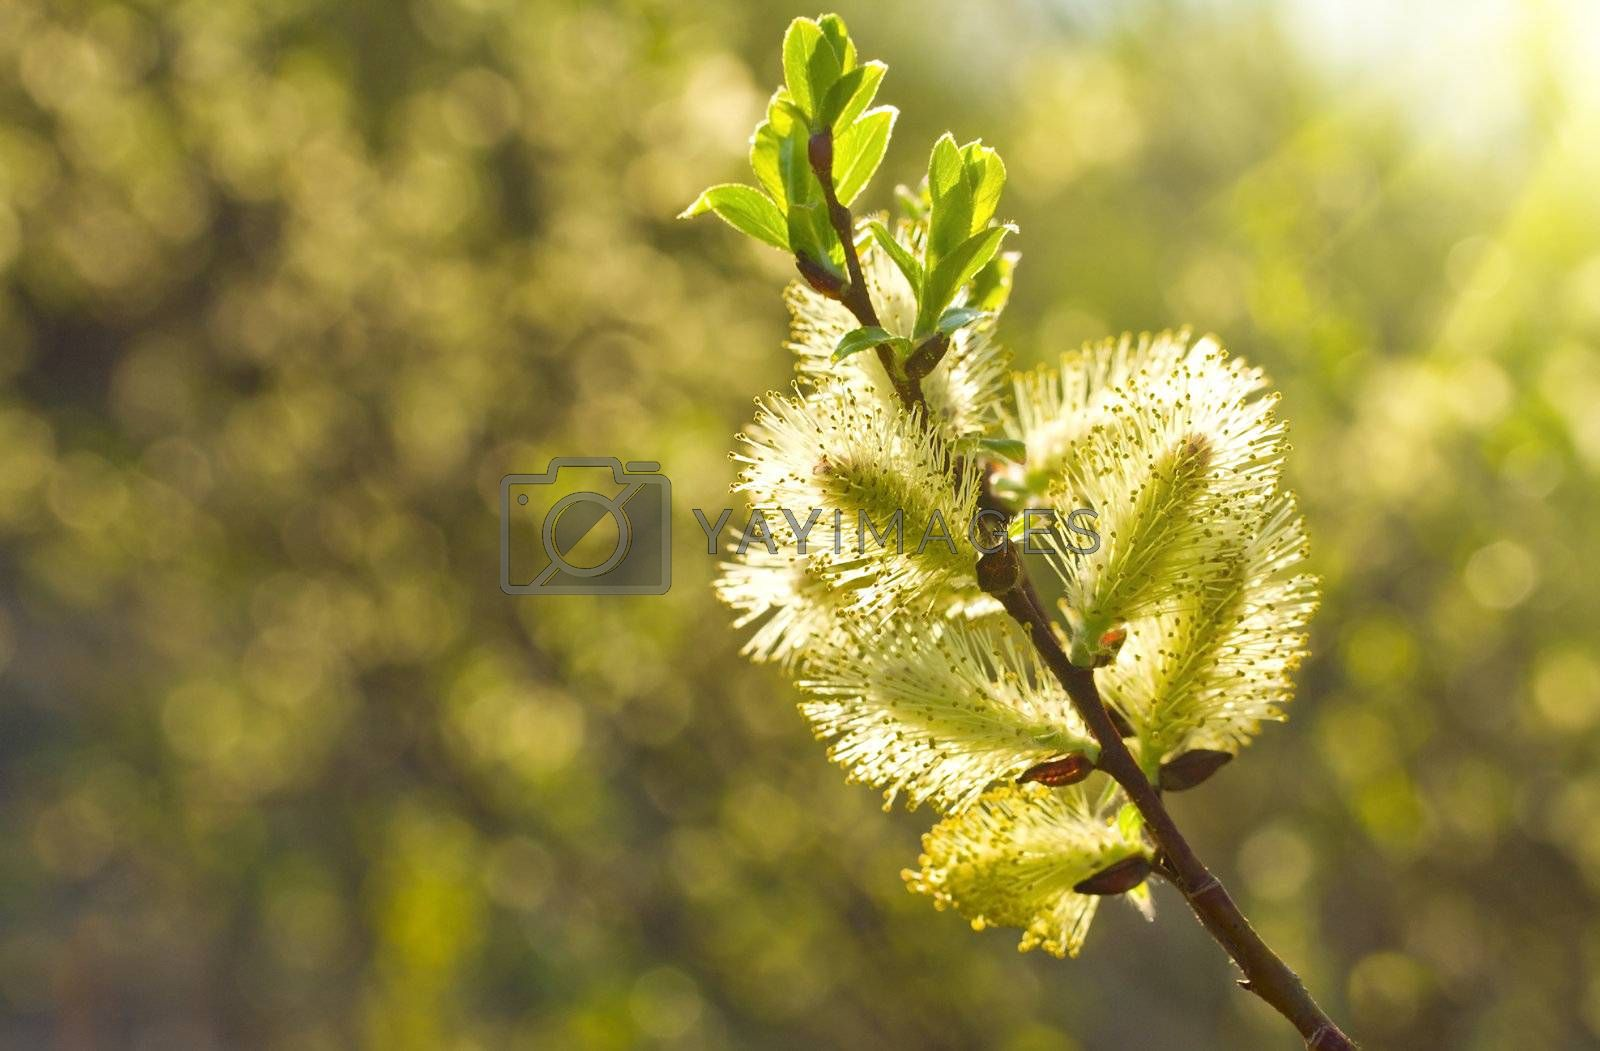 pussy willow branch in sunlight